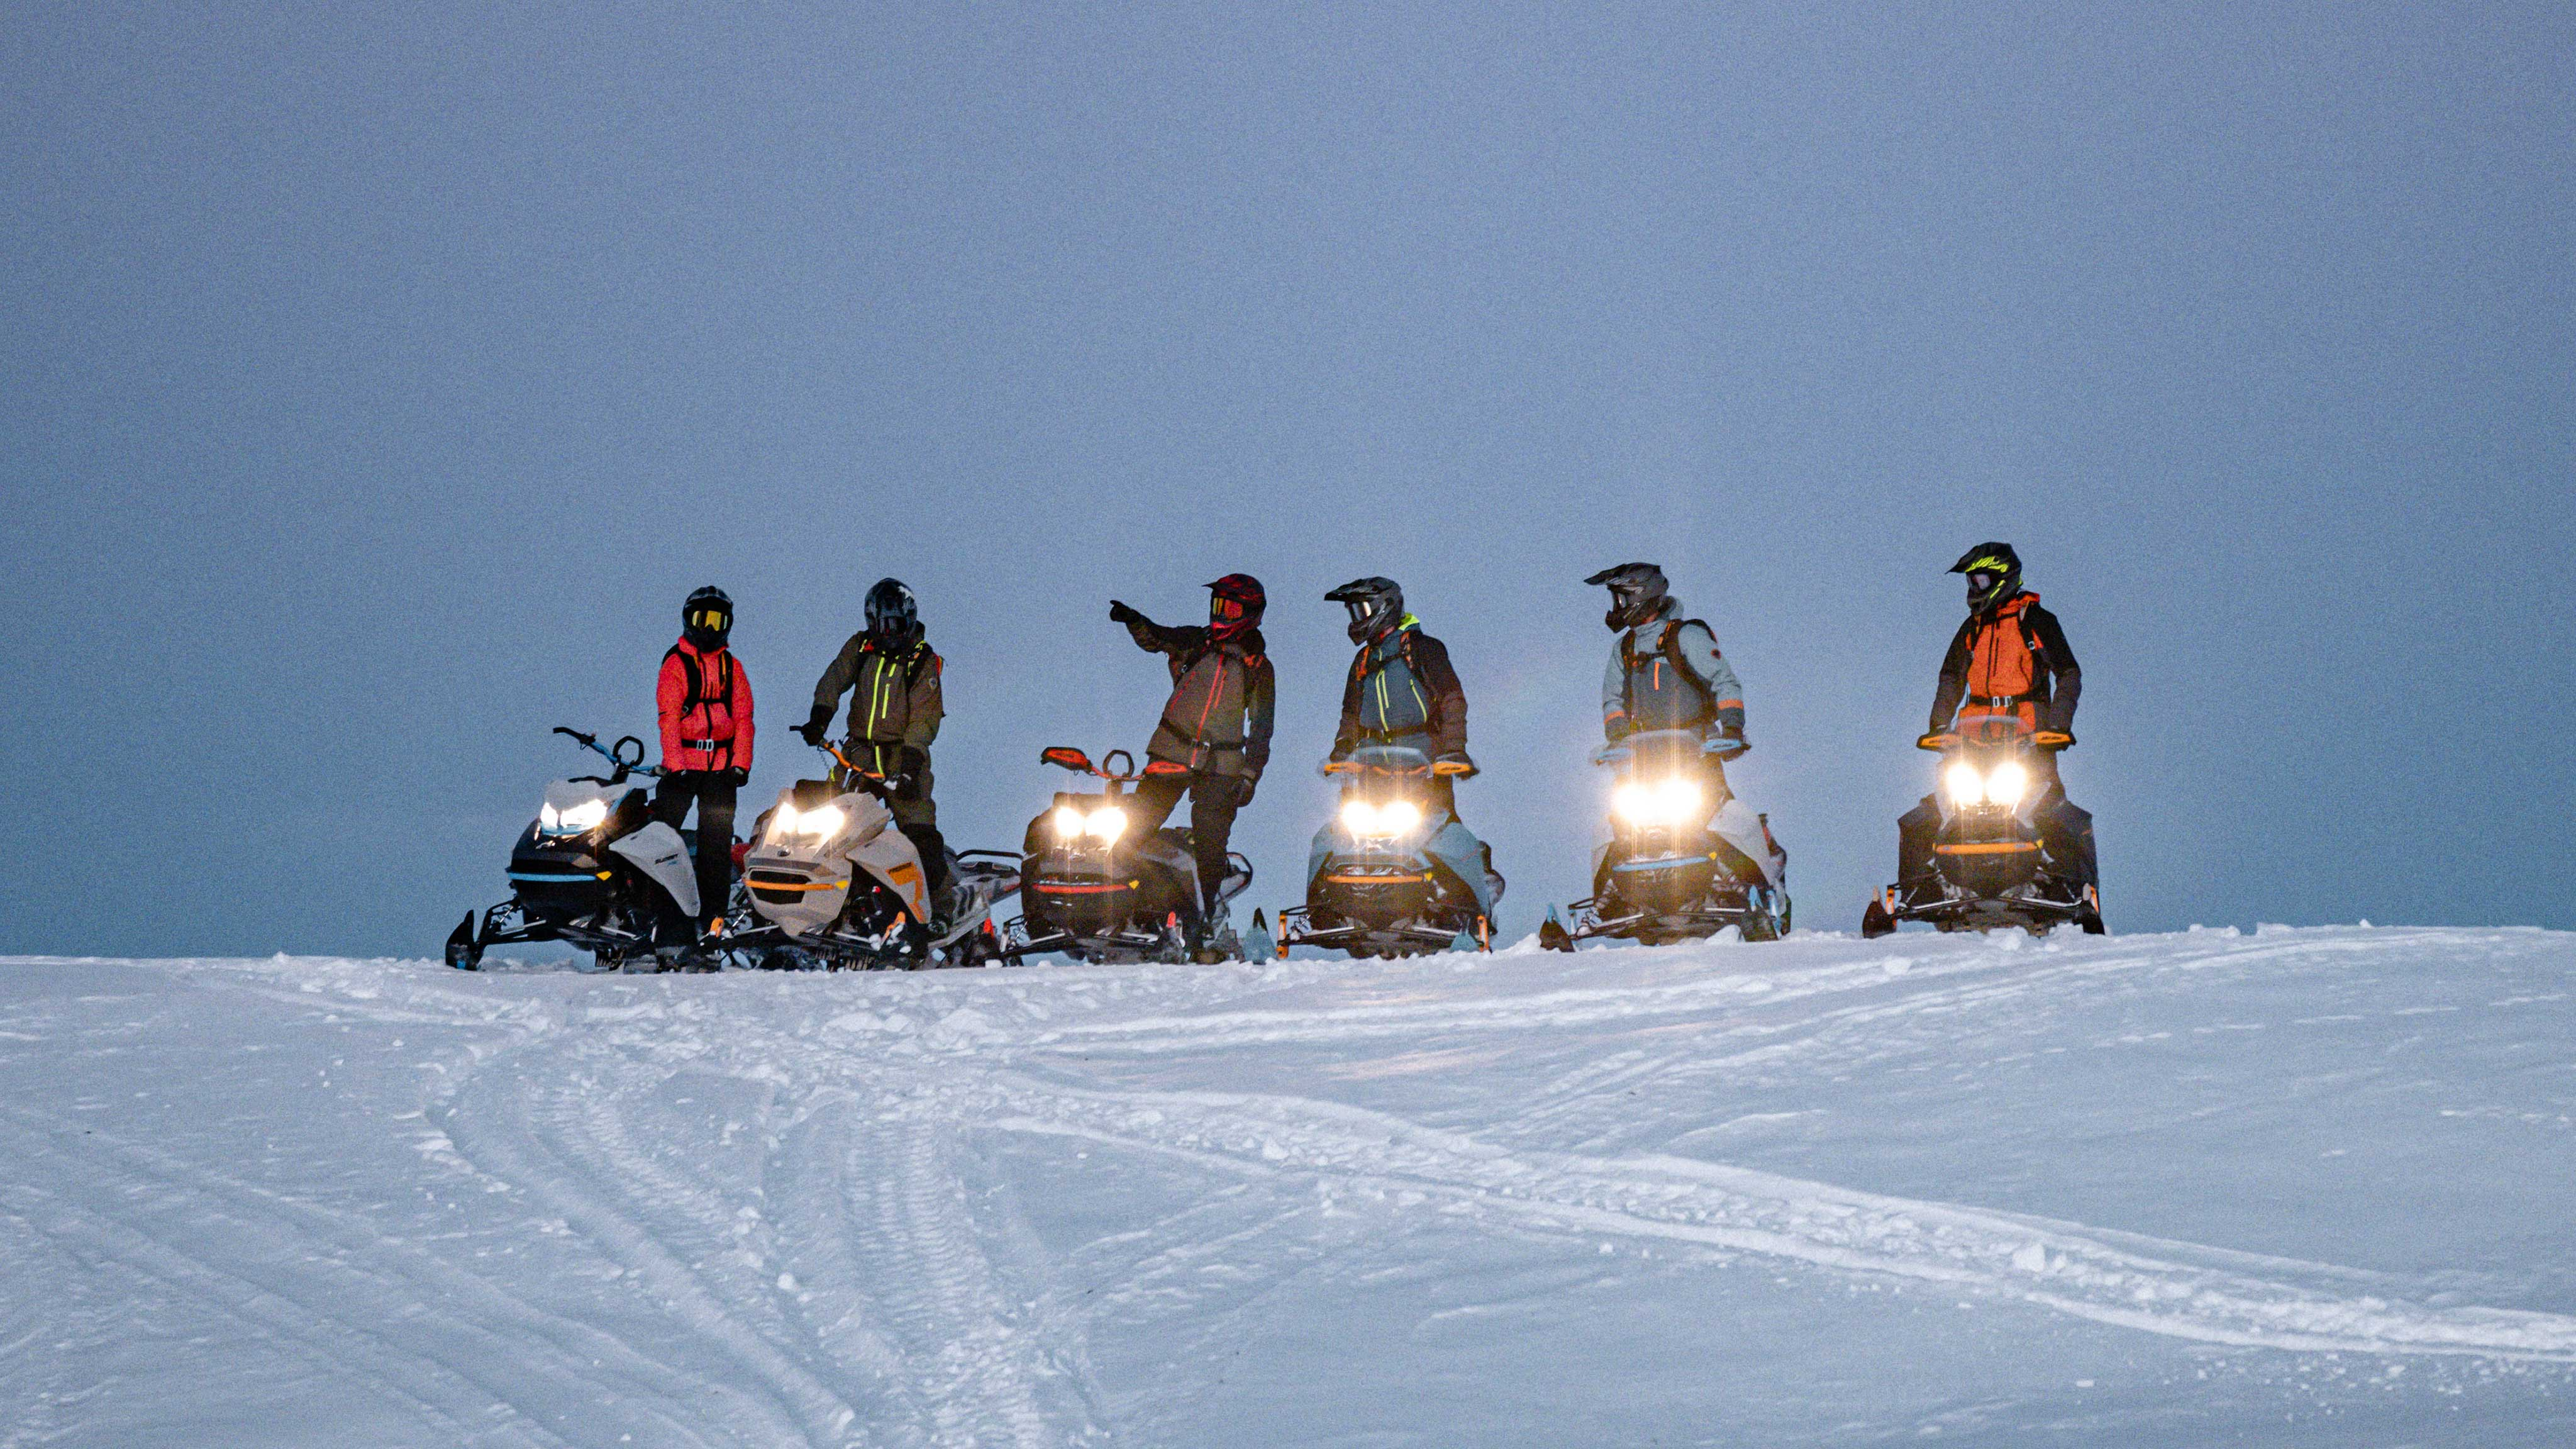 Family riding new 2022 Ski-Doo Lineup